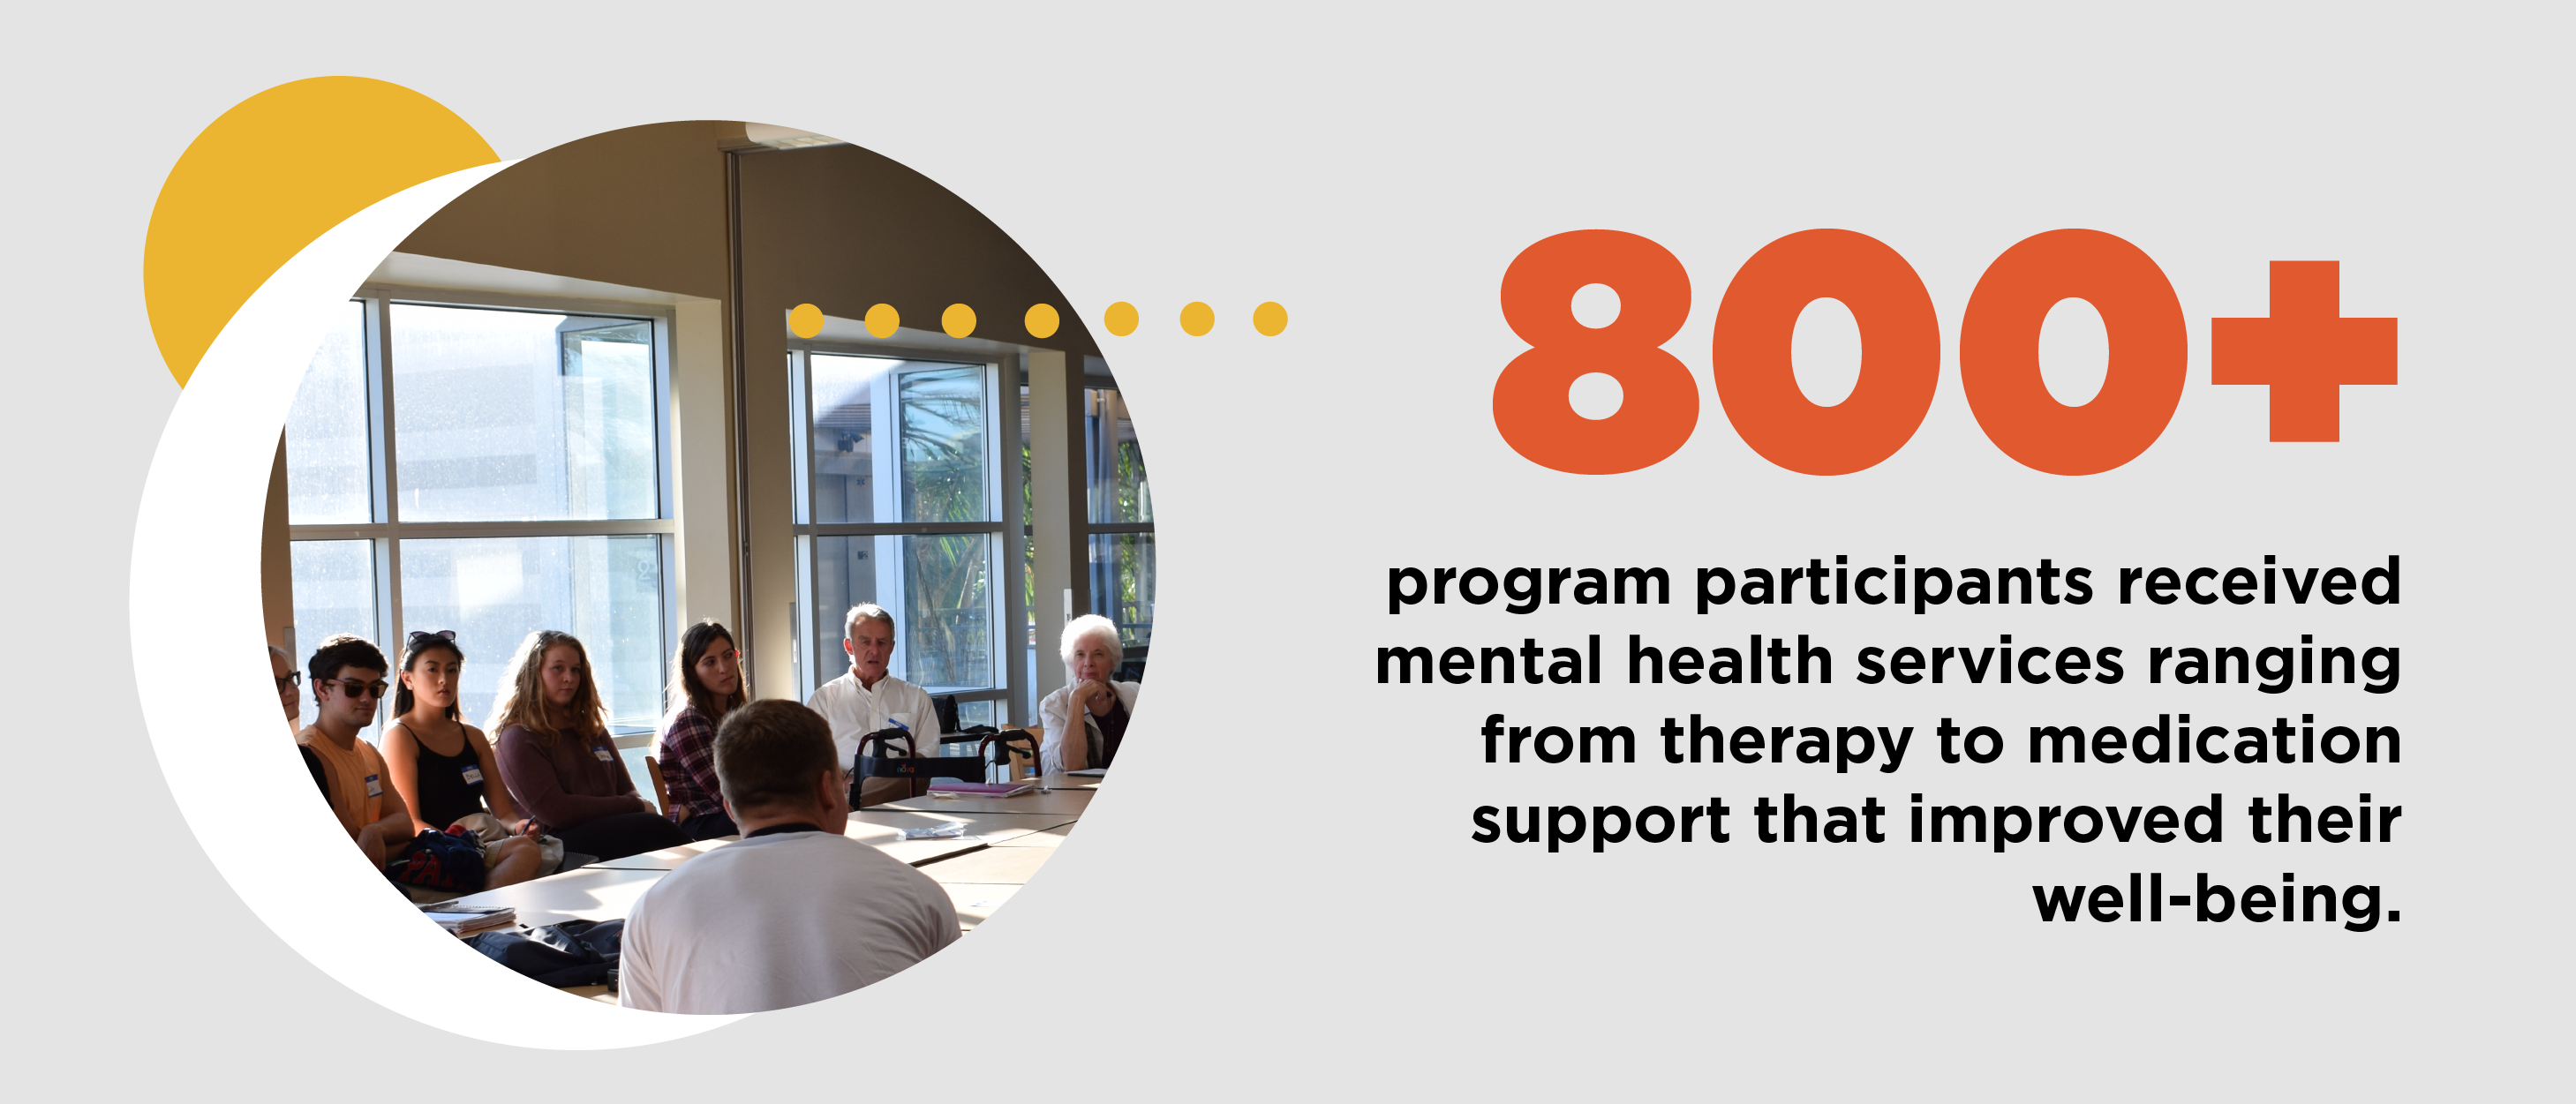 800+ program participants received mental health services ranging from therapy to medication support that improved their well-being